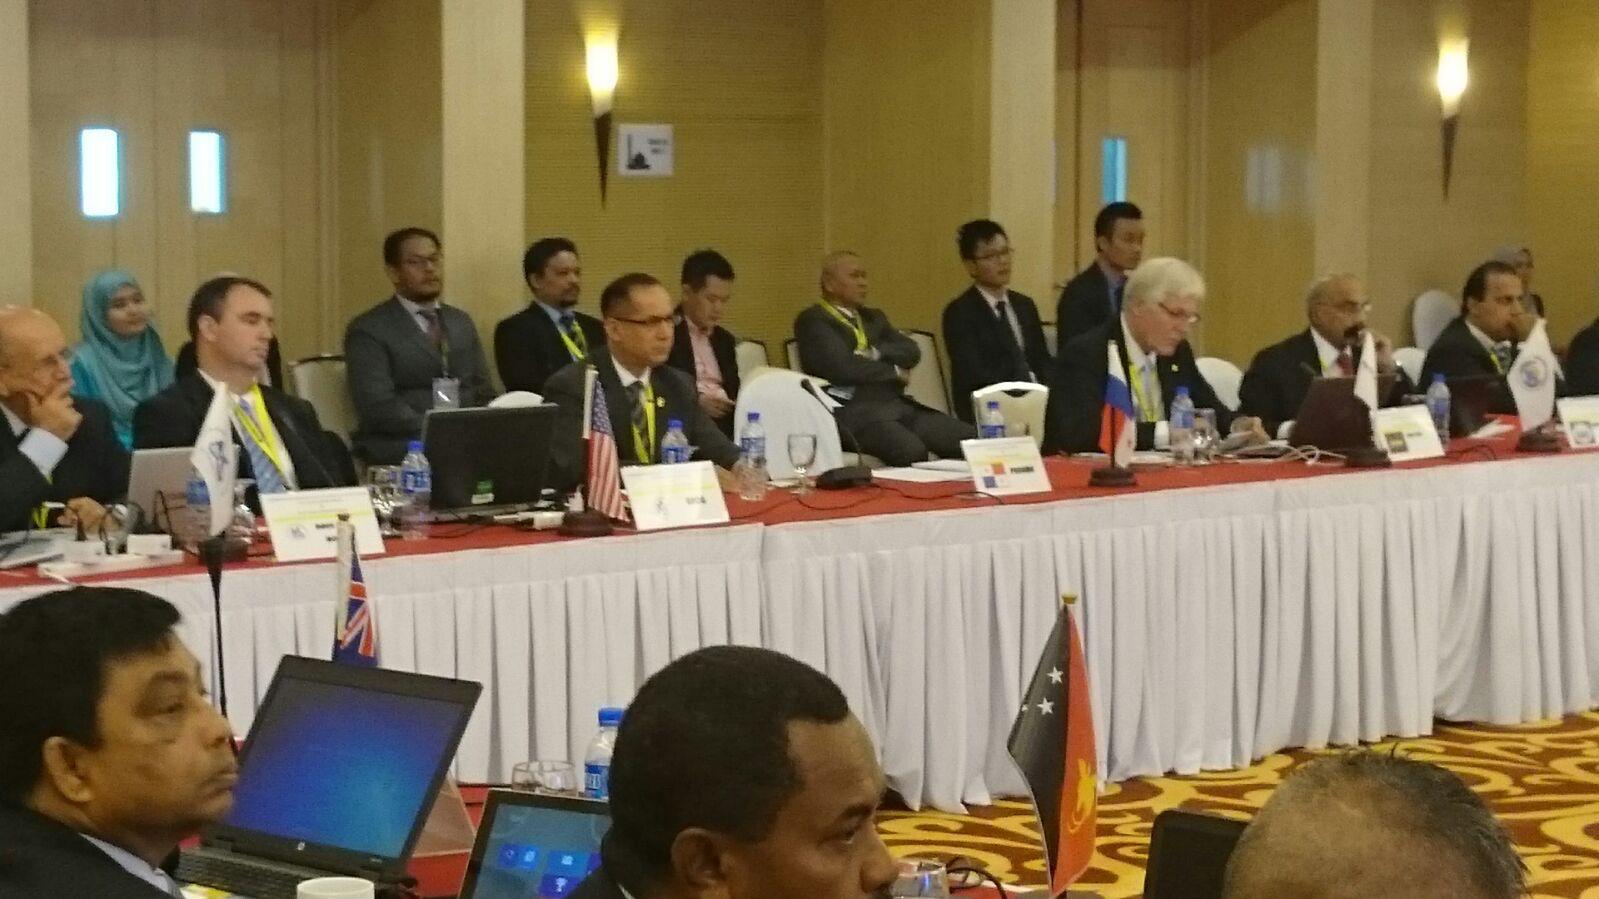 Second from the left, Ambassador Díaz, during the twenty-sixth meeting of Tokyo MOU held in Putrajaya, Malaysia.